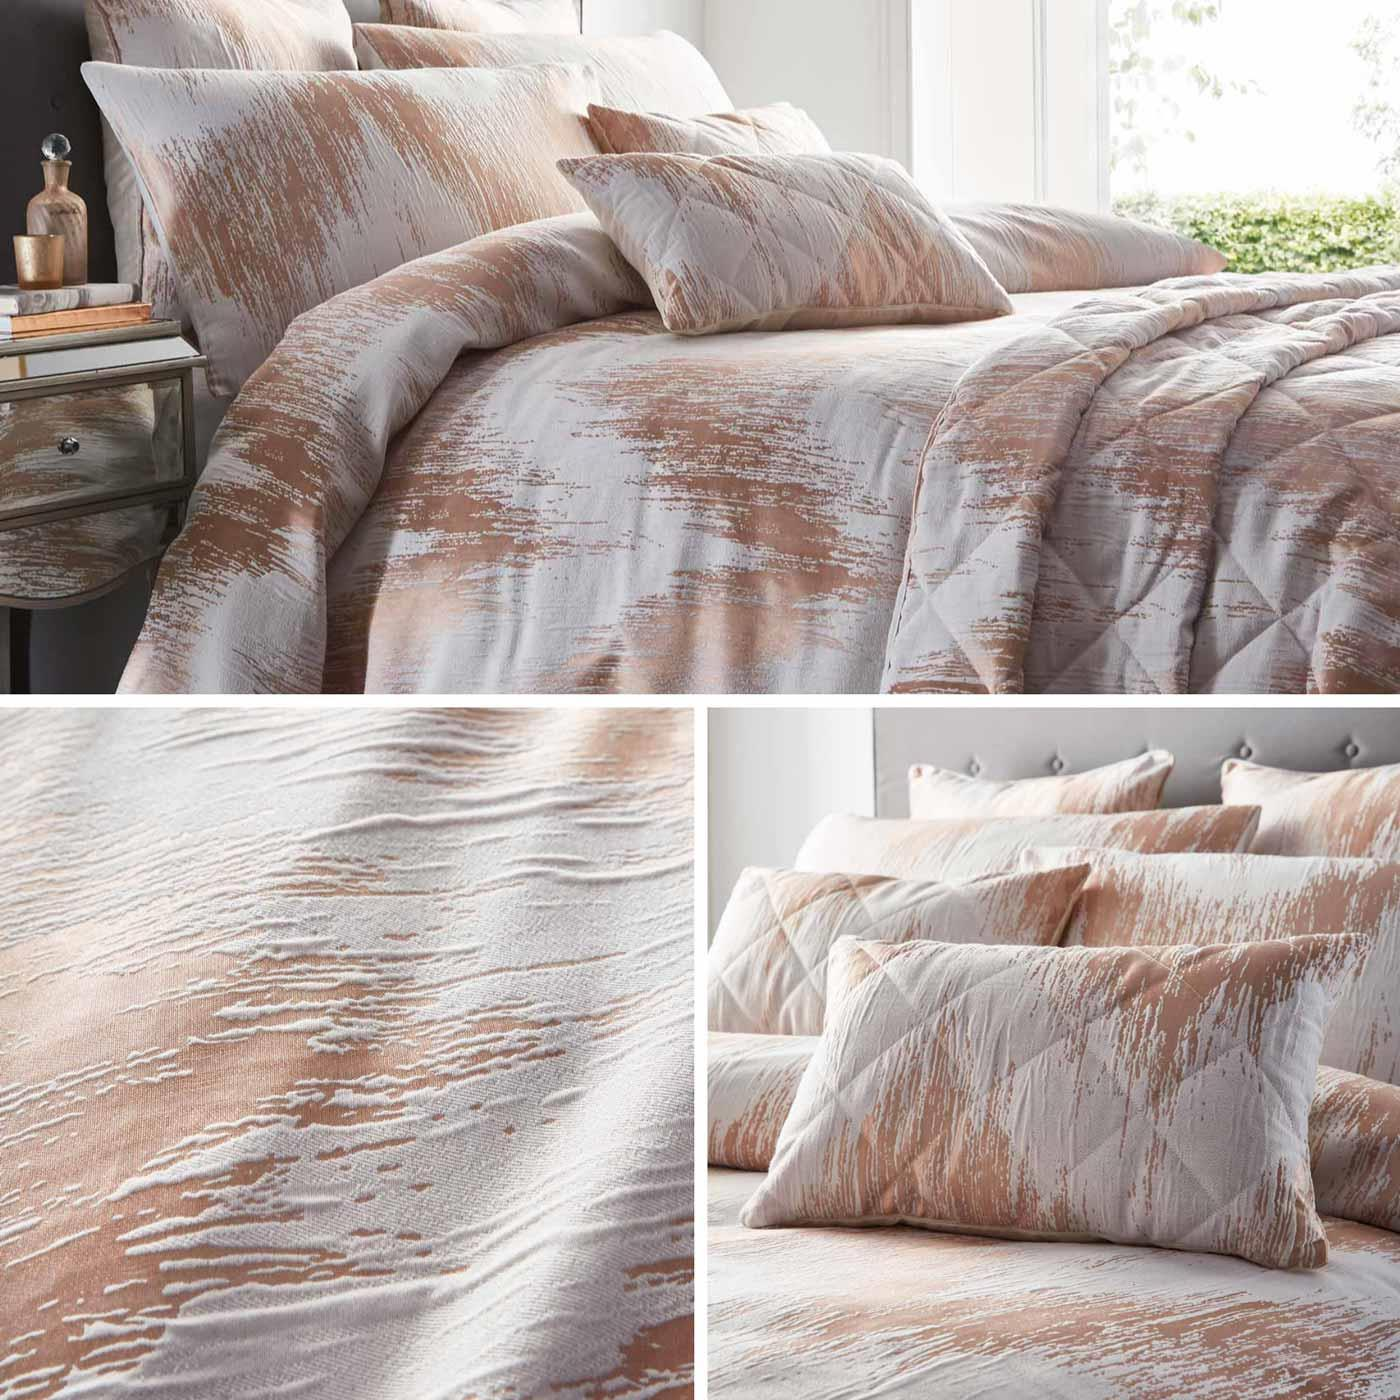 Details About Gold Duvet Covers Metallic Chevron Jacquard Luxury Quilt Cover Bedding Sets